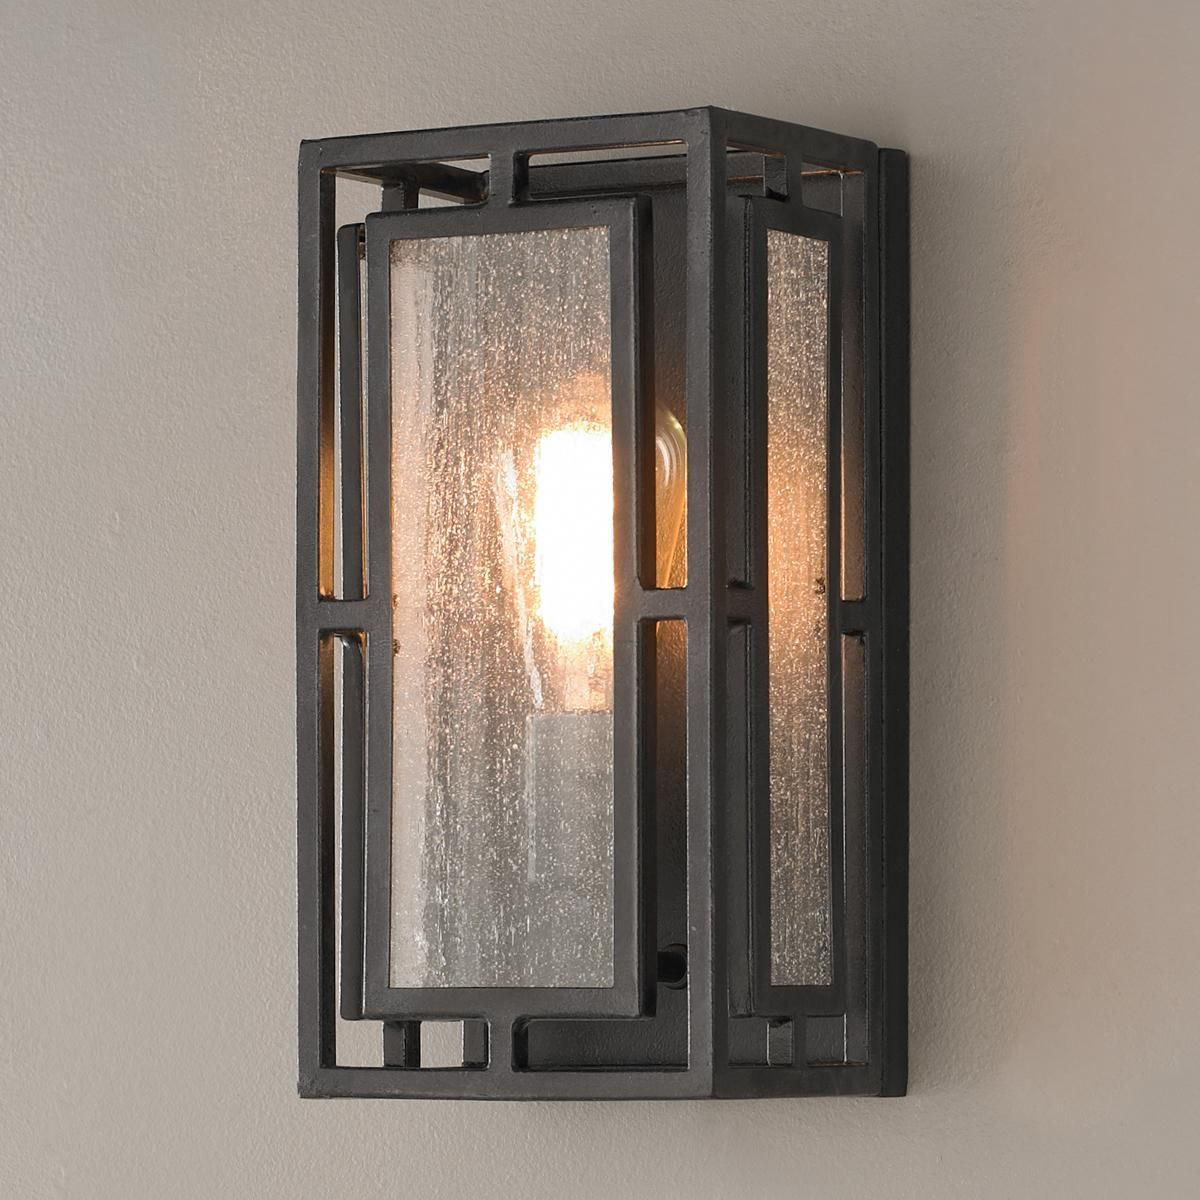 Rustic Geometric Wall Sconce Rustic Wall Sconces Wall Sconce